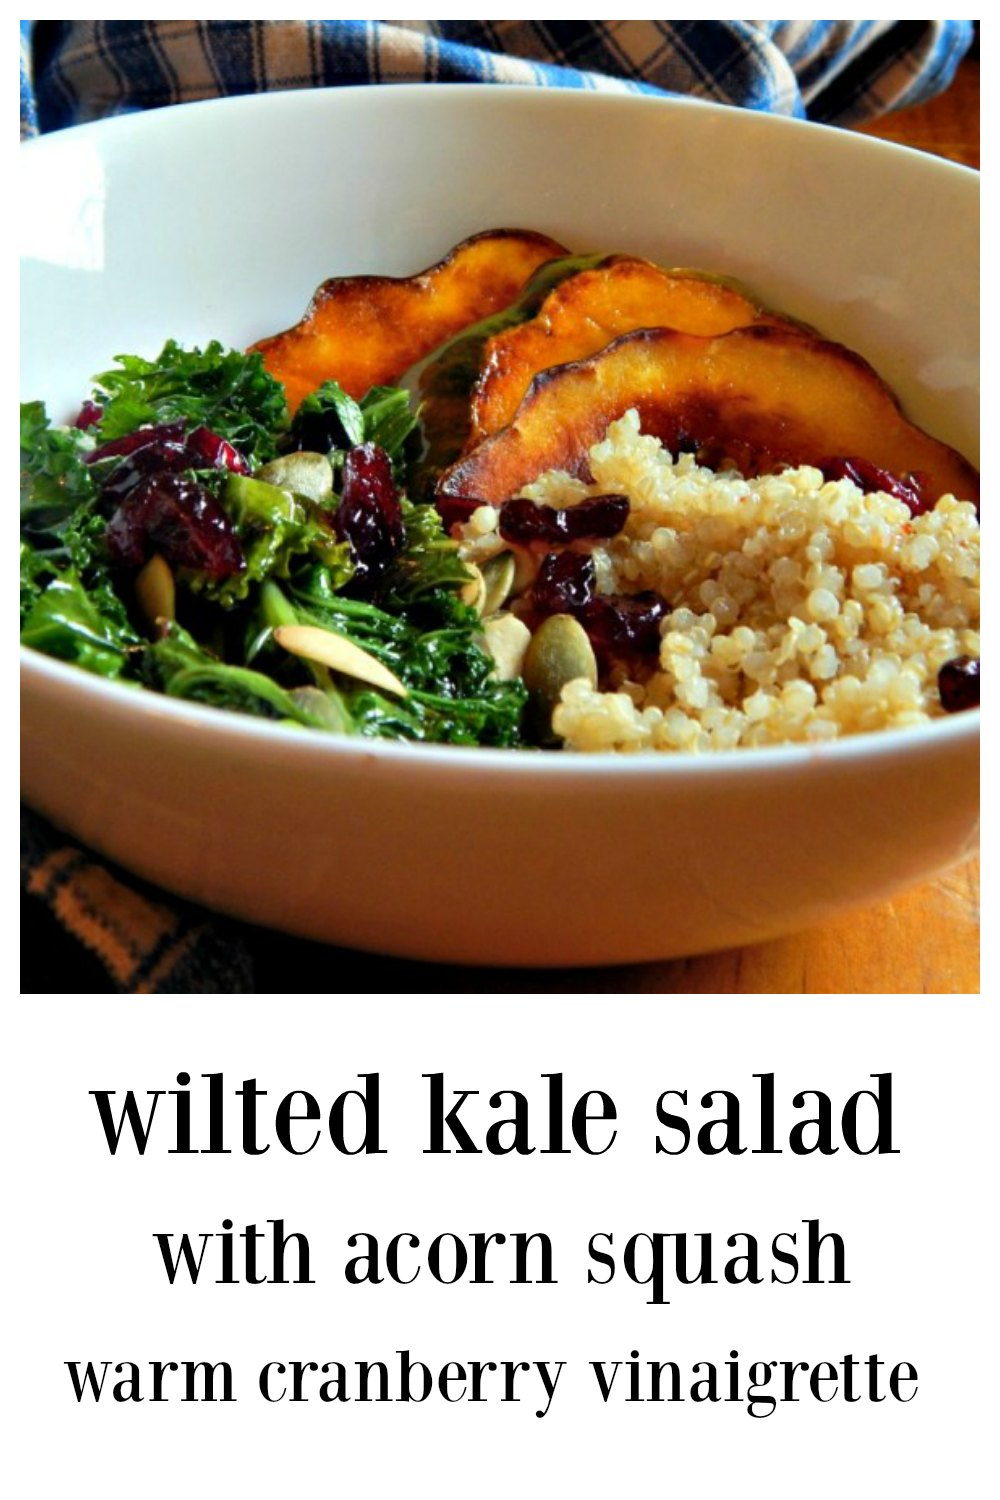 This Wilted Kale Salad with Acorn Squash has an amazing warm cranberry vinaigrette, healthy protein-packed quinoa & a few nuts for crunch! #KaleSalad #KaleQuinoaSalad #KaleAcornSquashBowl #KaleGoddess Bowl